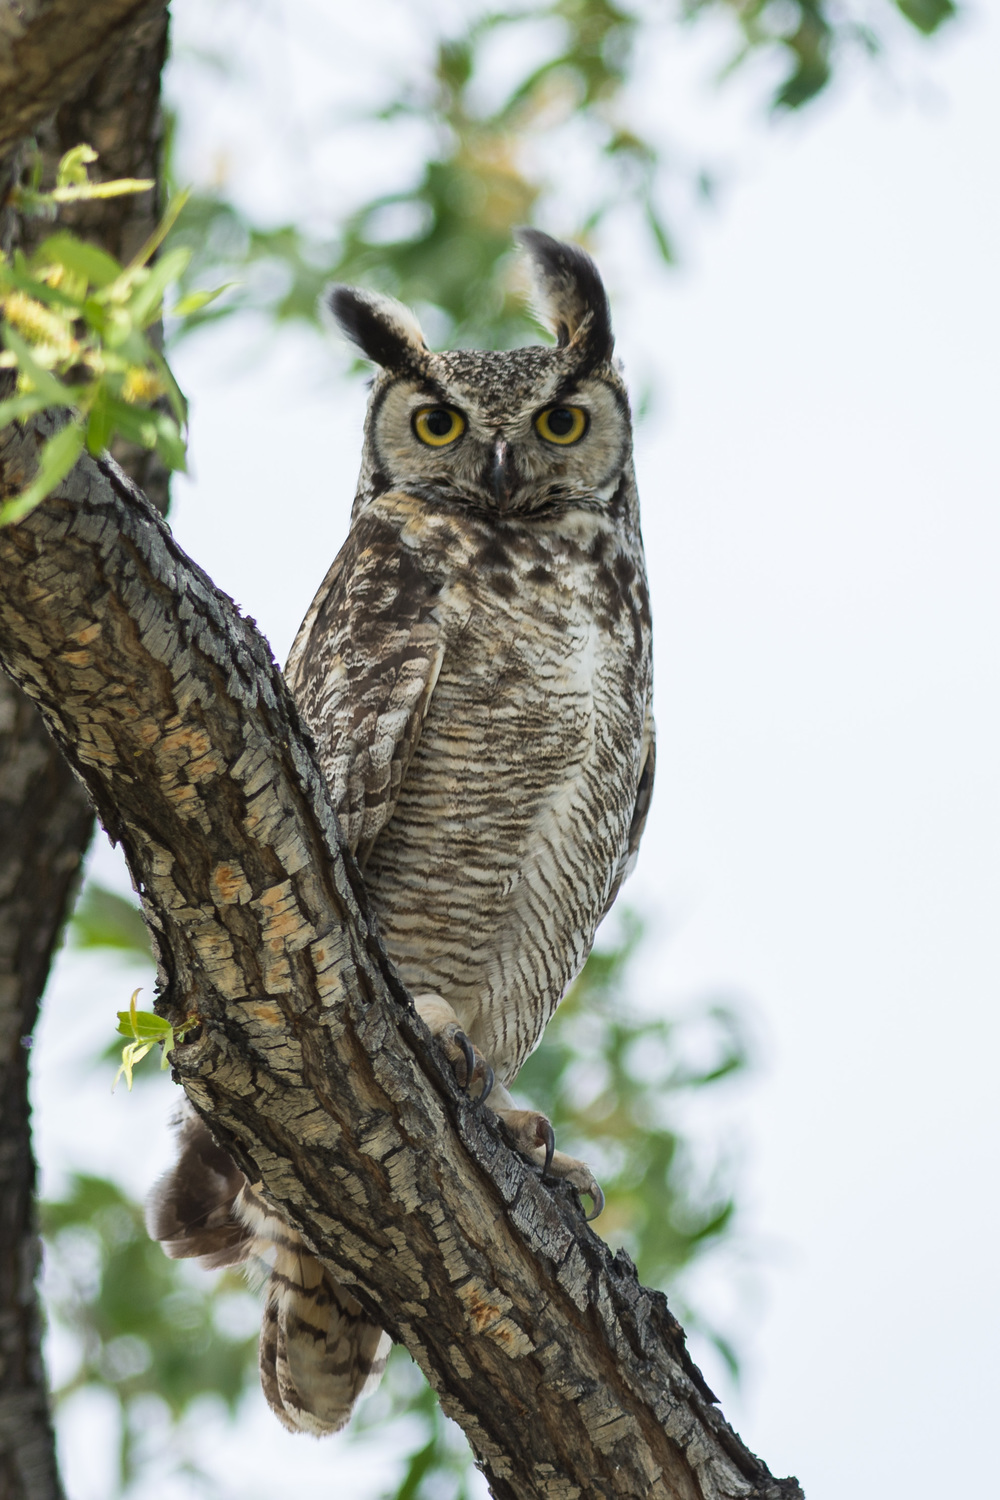 Great Horned Owl (Bubo virginianus) at Pyramid Lake - Willows, WAS (NV)  EQ: D7200, 300mm f/2.8    Taken: 5-19-2016 at 11:03   Settings: 450mm (35mm eqiv), 1/640s, f/3.2, ISO100, +1/3EV     Conditions: Sunny and Windy